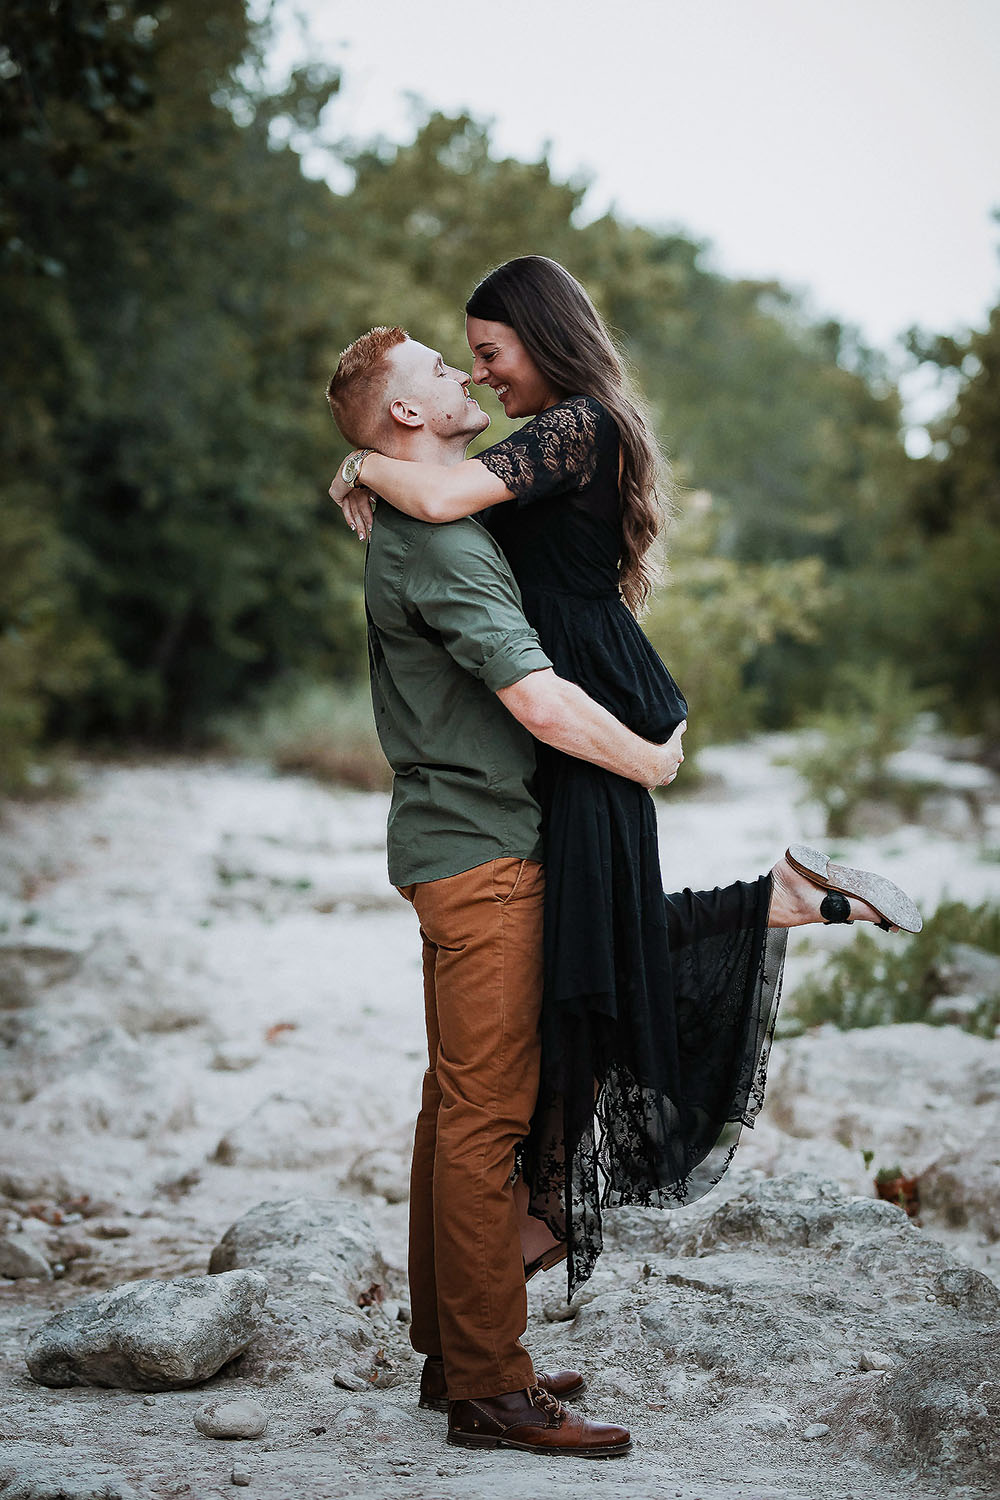 Engagement Session Giveaway 2019 - Three lucky South Texas couples are going to win big, this fall- one of them might as well be you! Enter to win 1 of 3 prizes:-First couple drawn will receive a FREE engagement session with 10 hi-res downloads-Second will receive 50% off an engagement session with 5 hi-res downloads-Third will receive $50 off the session fee PLUS a 16x20 print to display at their weddingAnd that's not all- everyone who enters, but doesn't win will still receive 10% off their session fee when they book with Lo Caruthers Photography!There's literally NO reason for not entering!